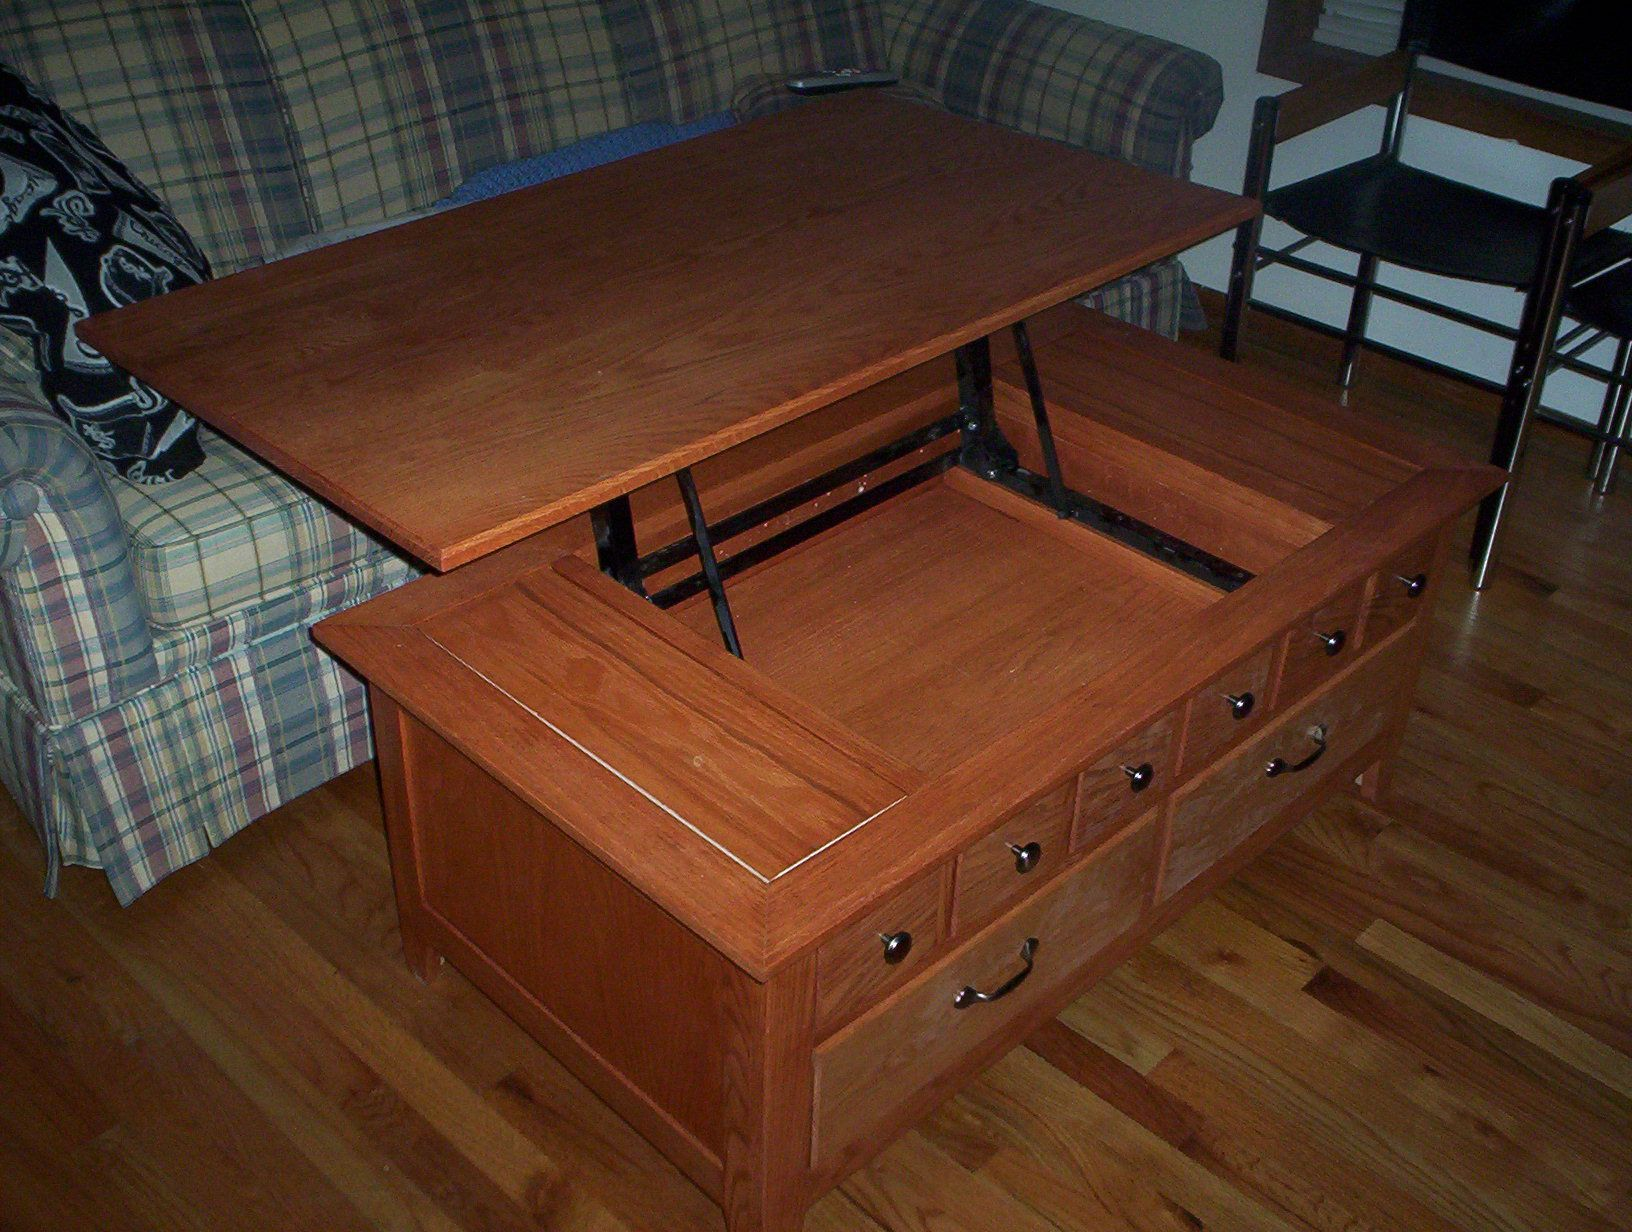 Raise Up Coffee Table Lift Up Coffee Table 80th Street Apartment Pinterest